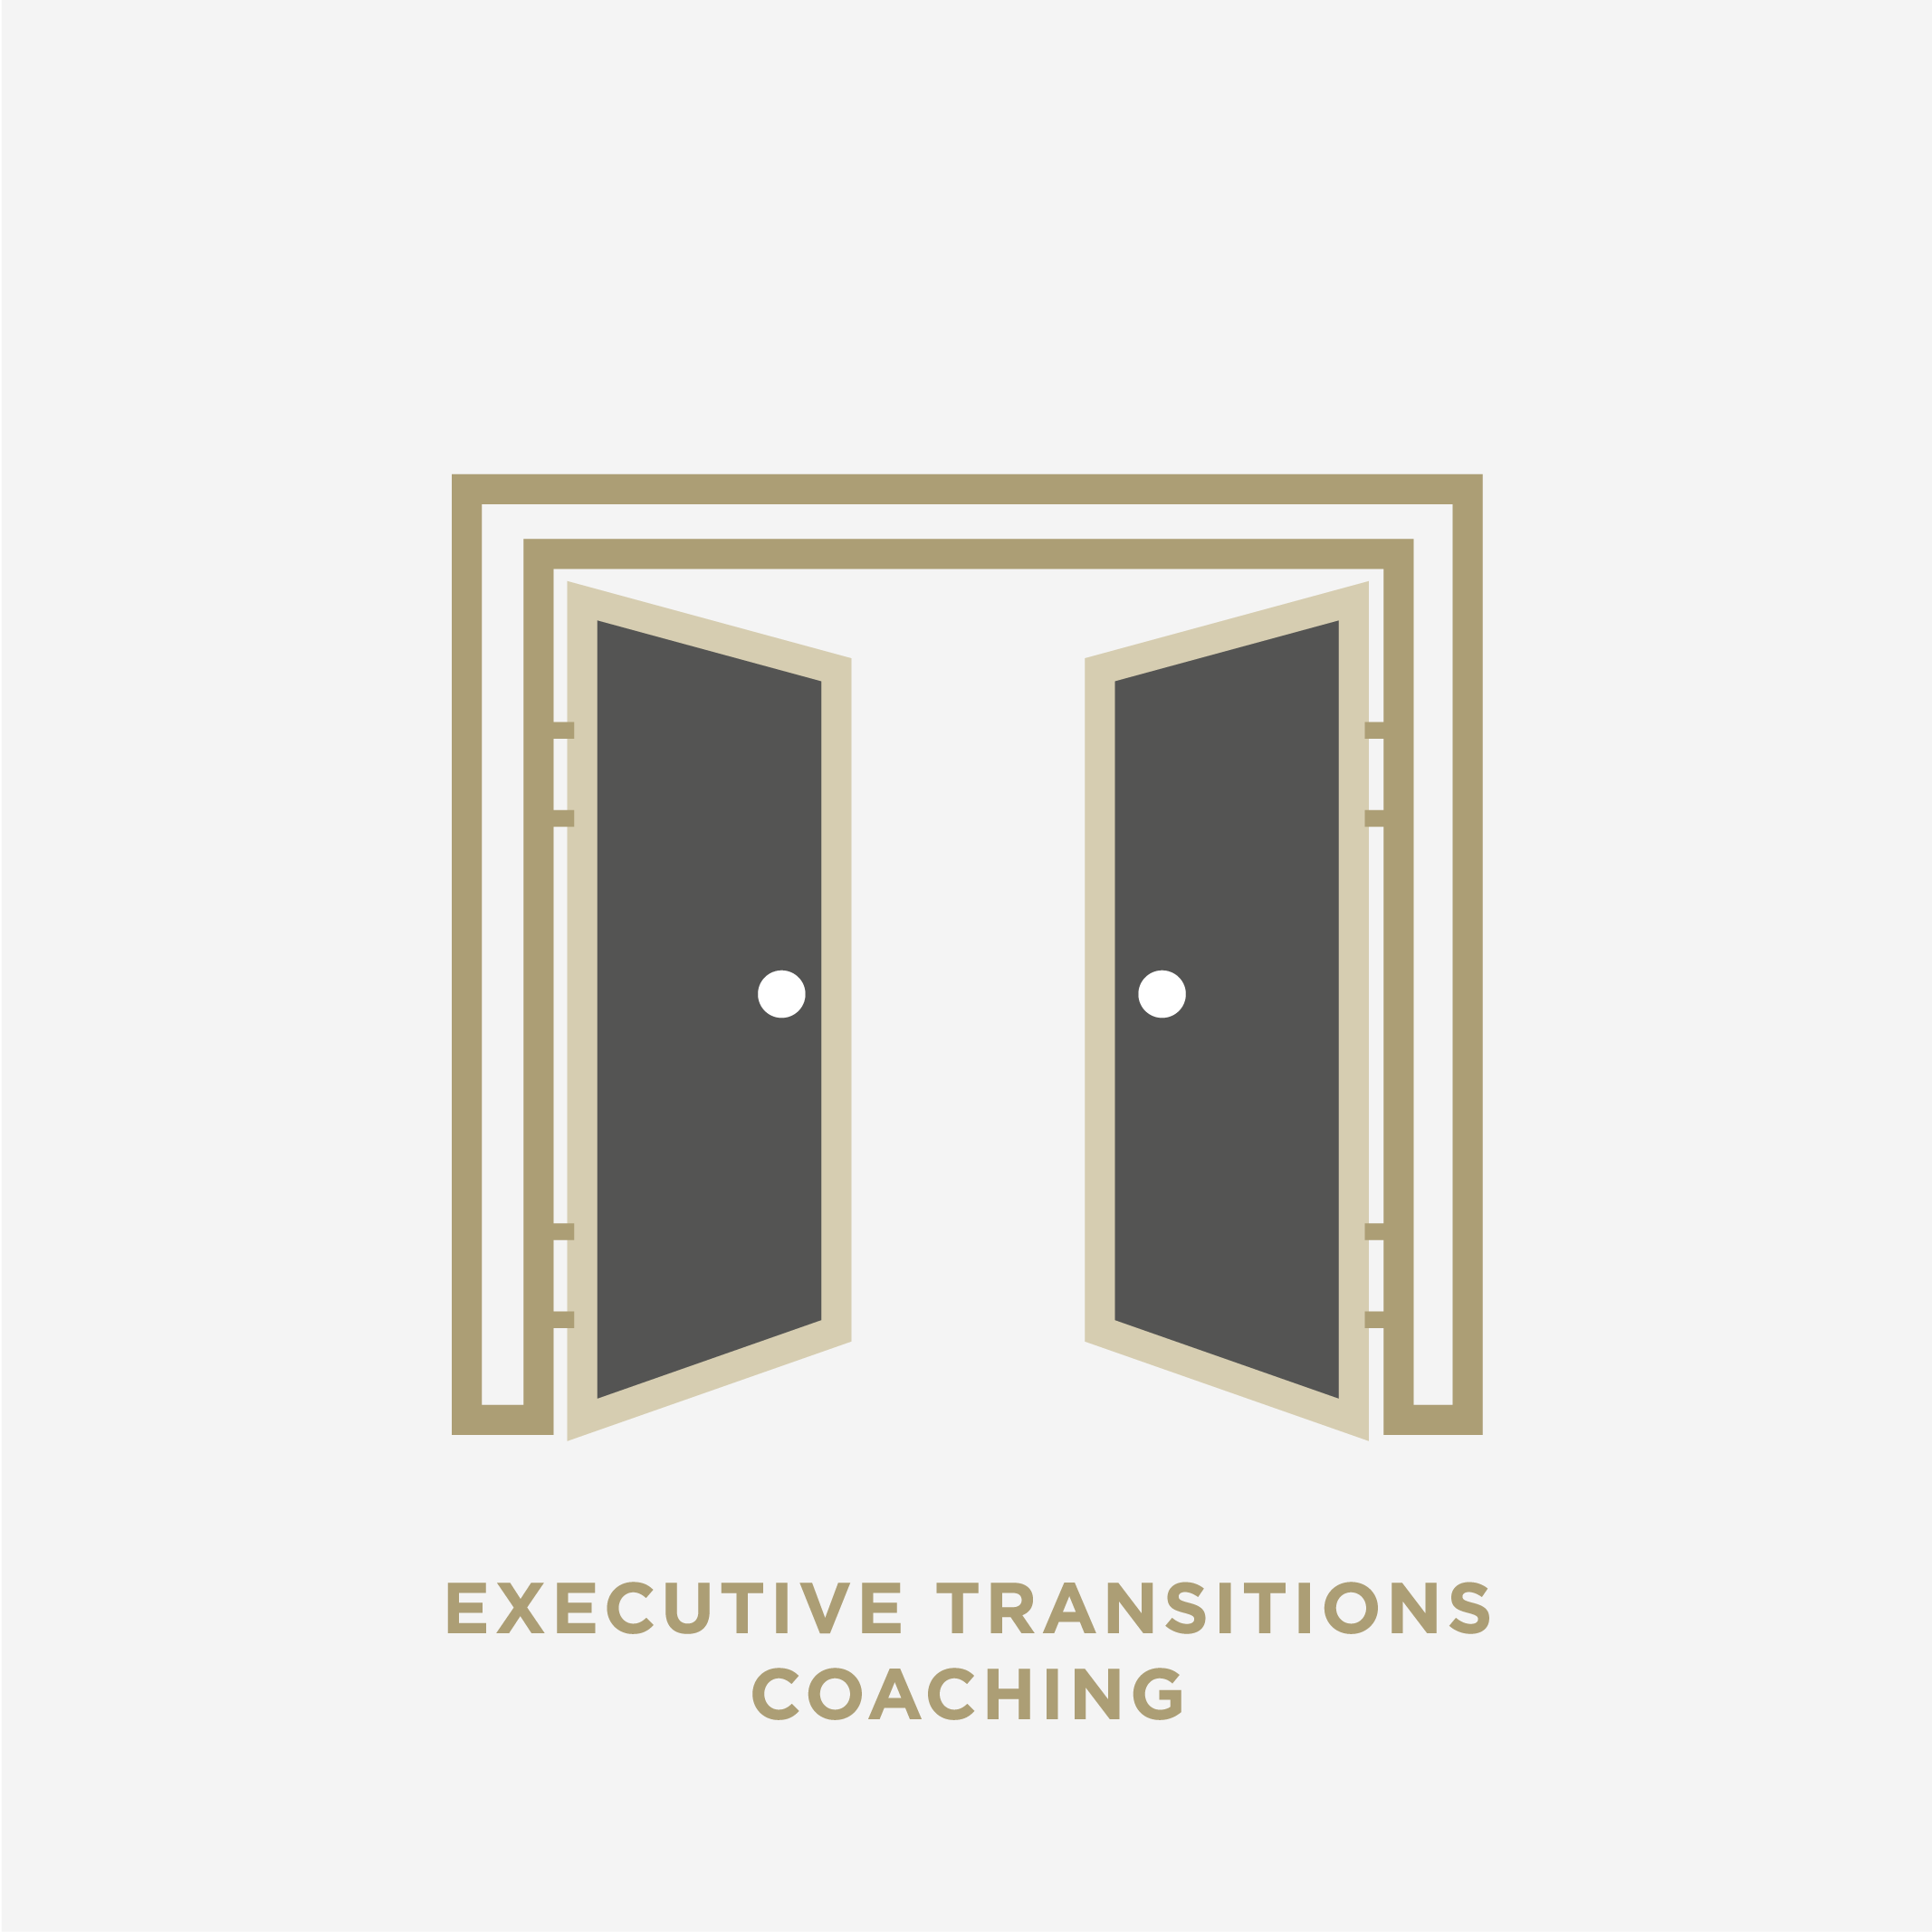 Executive Transitions coaching